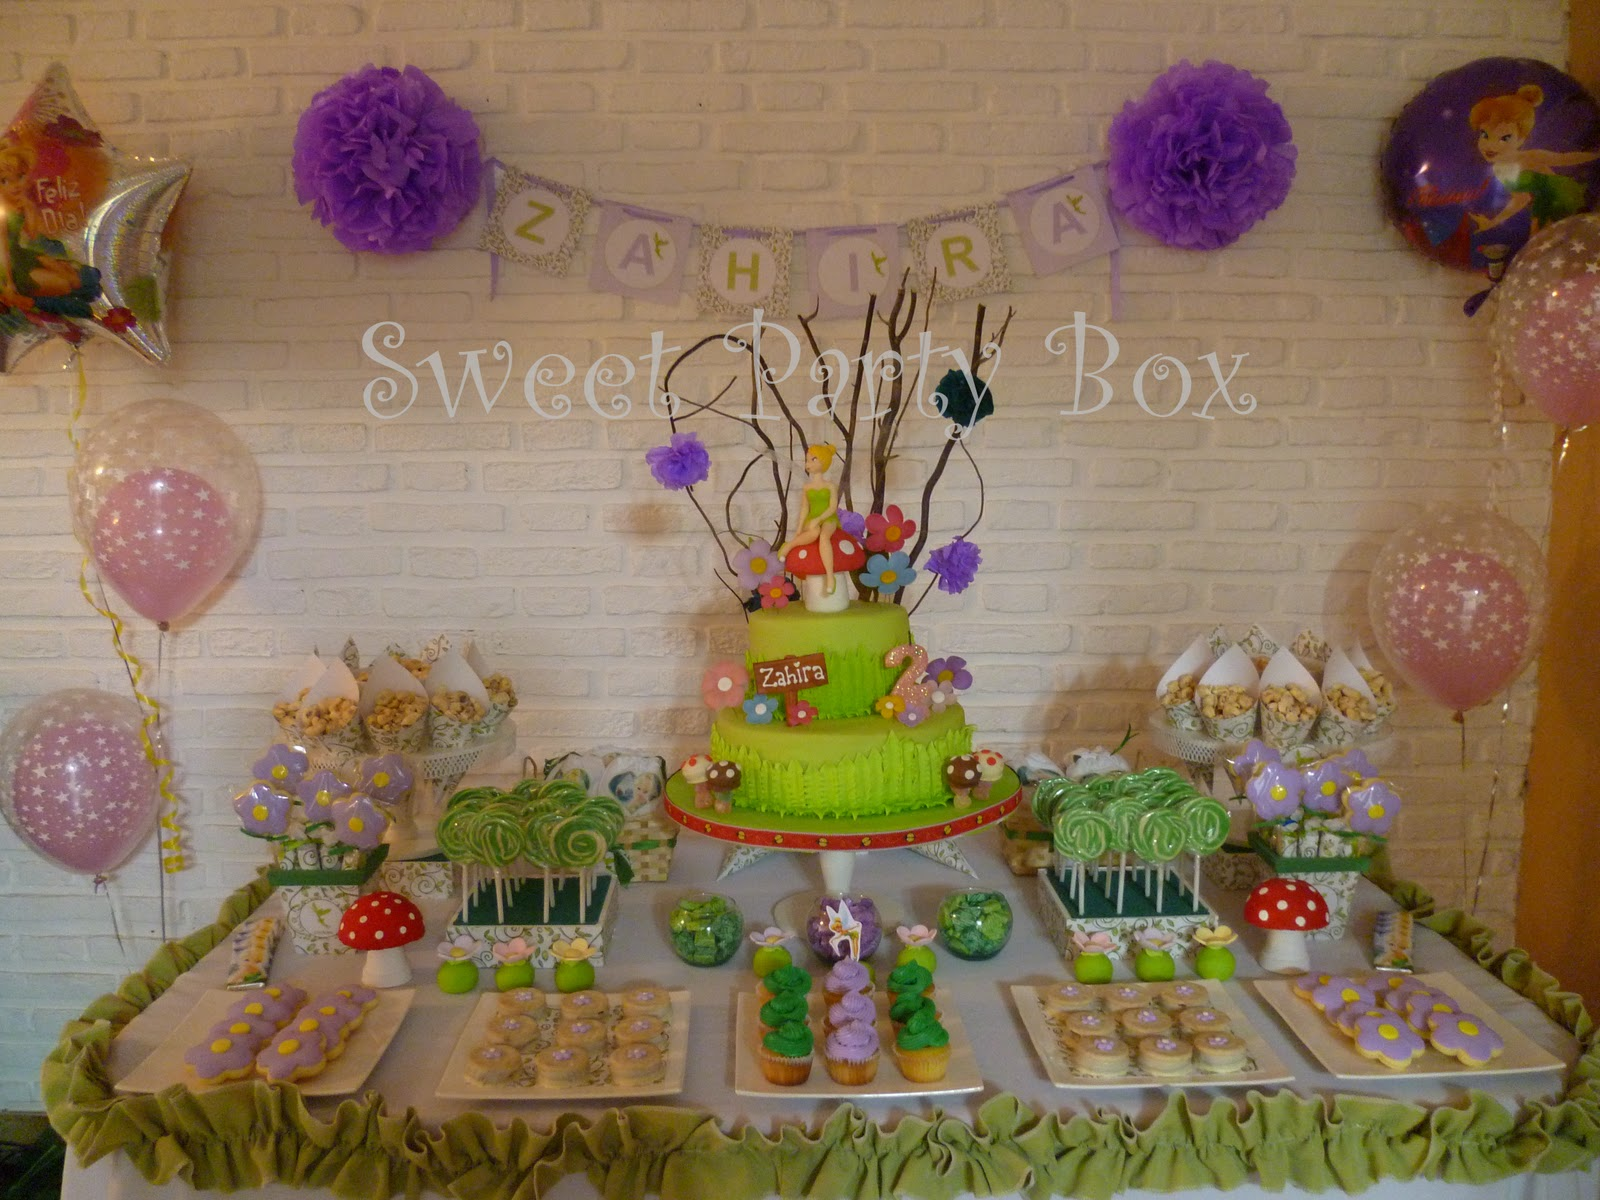 Sweet party box tinkerbell party zahira cumple sus 2 a itos - Decoracion de bares tematicos ...